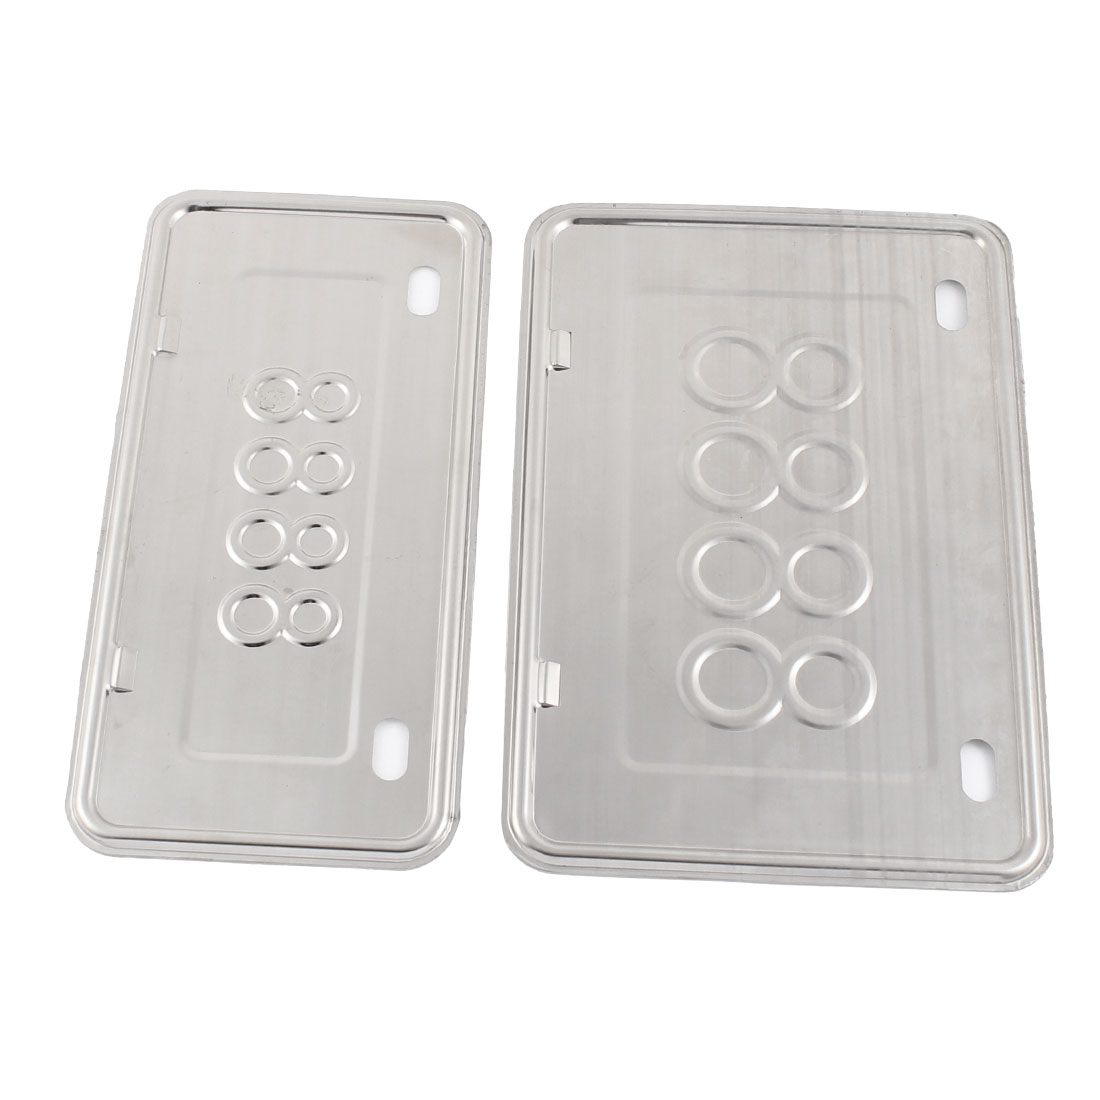 2 in 1 Silver Tone Glossy Metal Motorcycle License Plate Holder Set